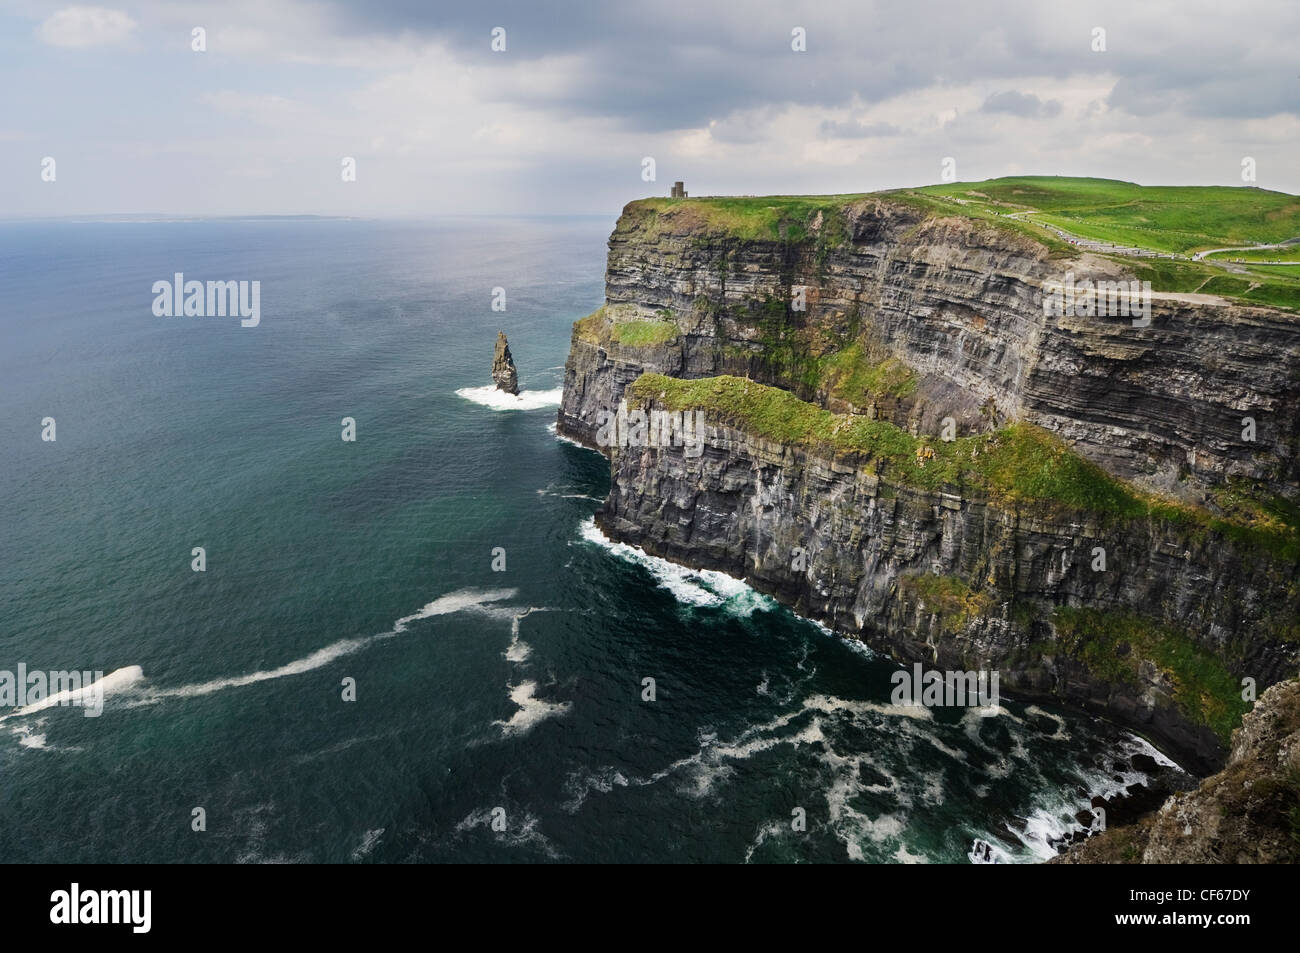 The Cliffs of Moher that stretch for 8 km & rise up to 214 metres above the Atlantic Ocean. - Stock Image